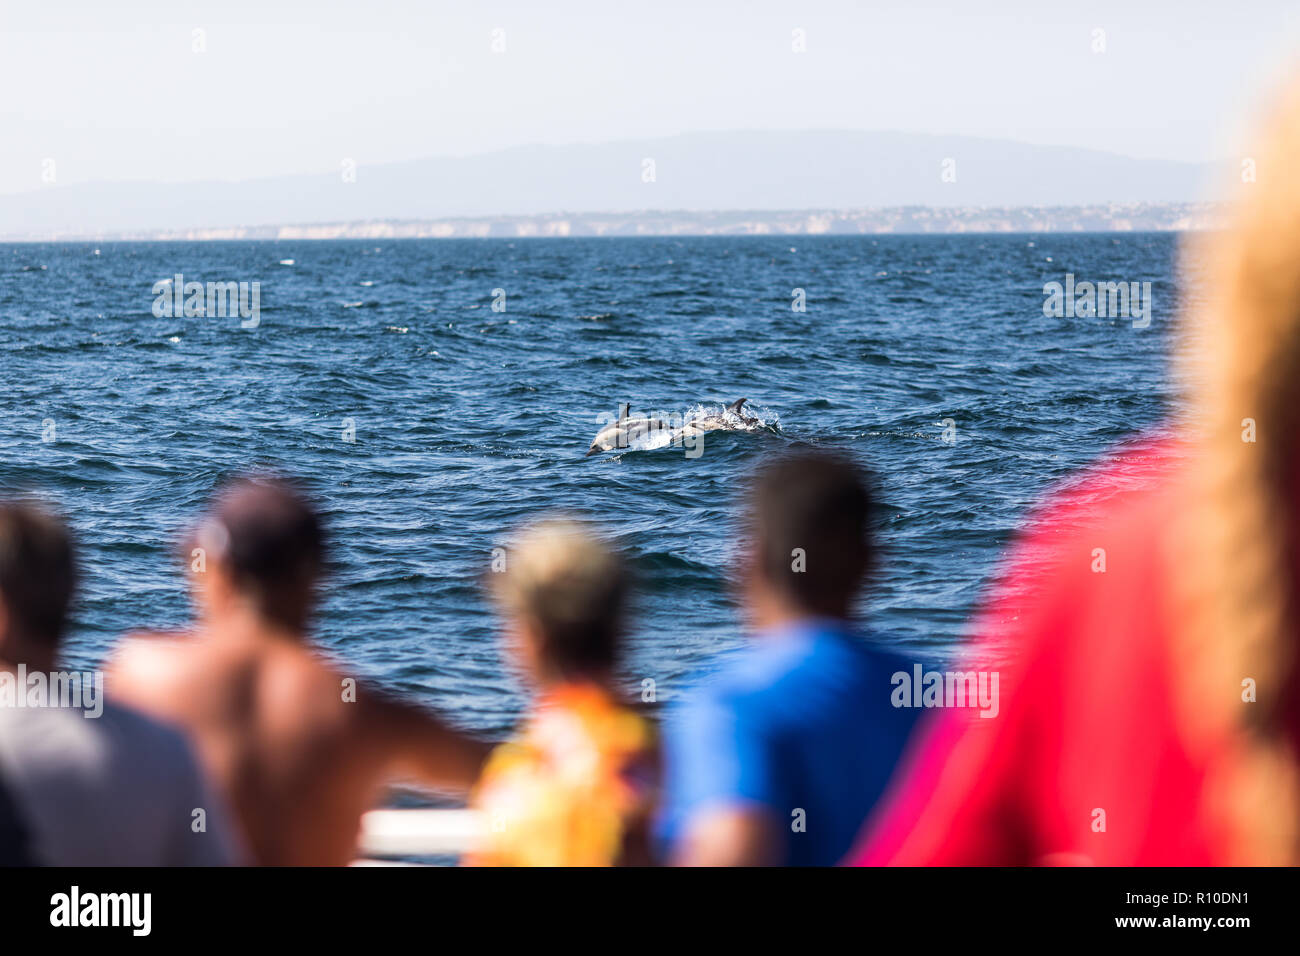 Albufeira, Portugal - Juny, 2018: Common bottlenose dolphin swimming near dolphin watching experience boat by the coast of Albufeira. - Stock Image